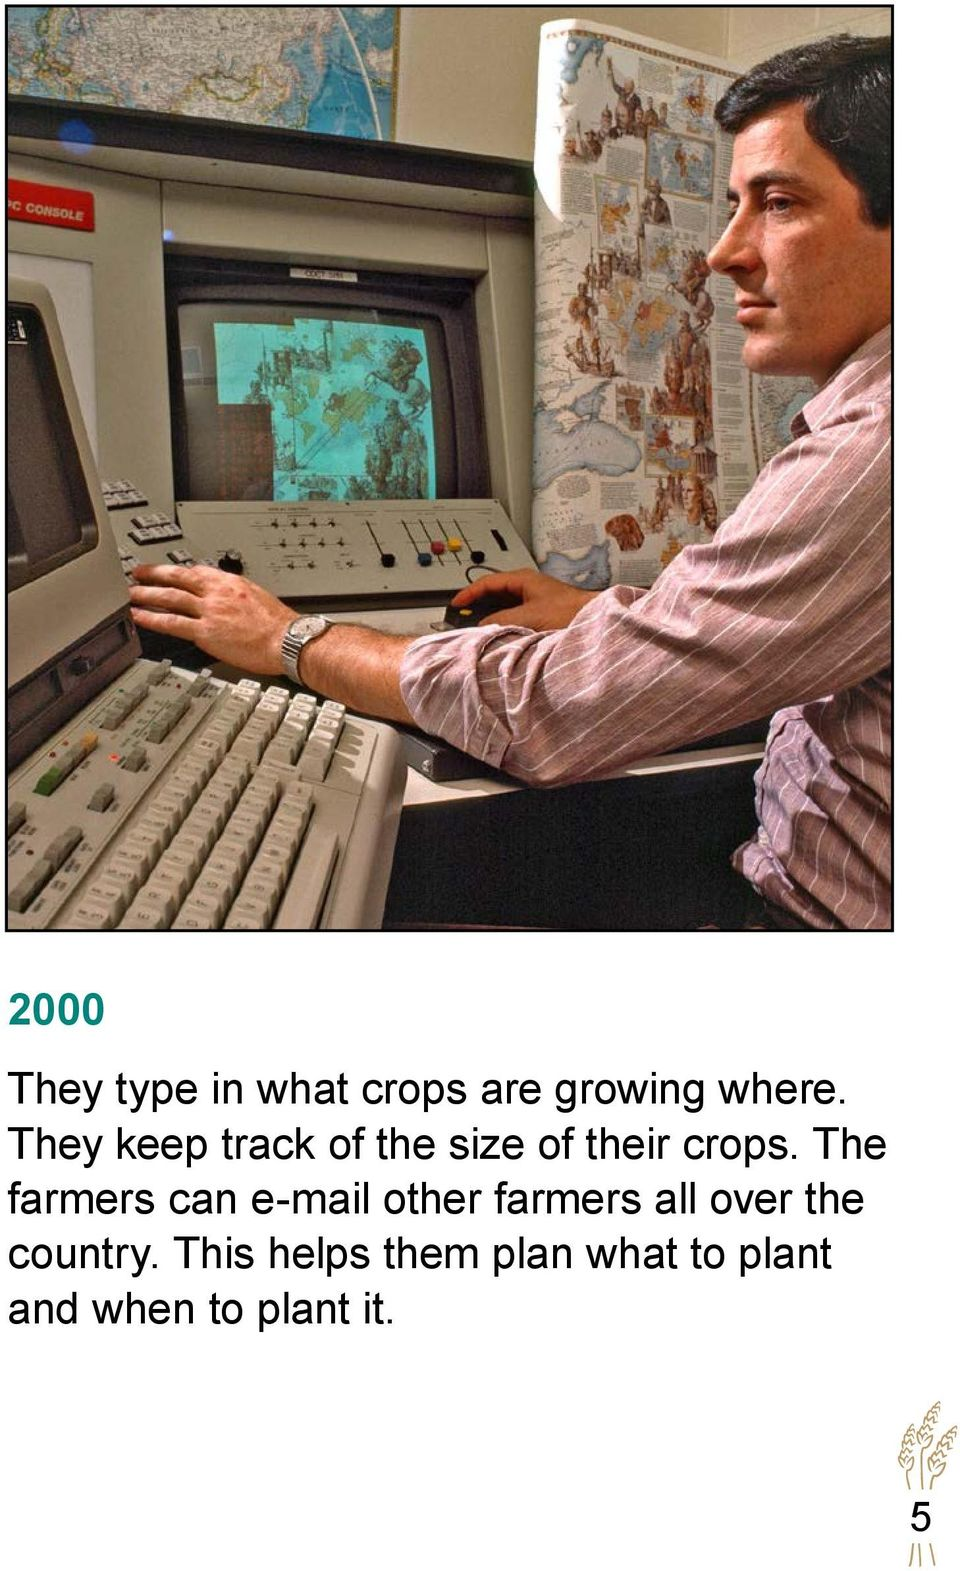 The farmers can e-mail other farmers all over the